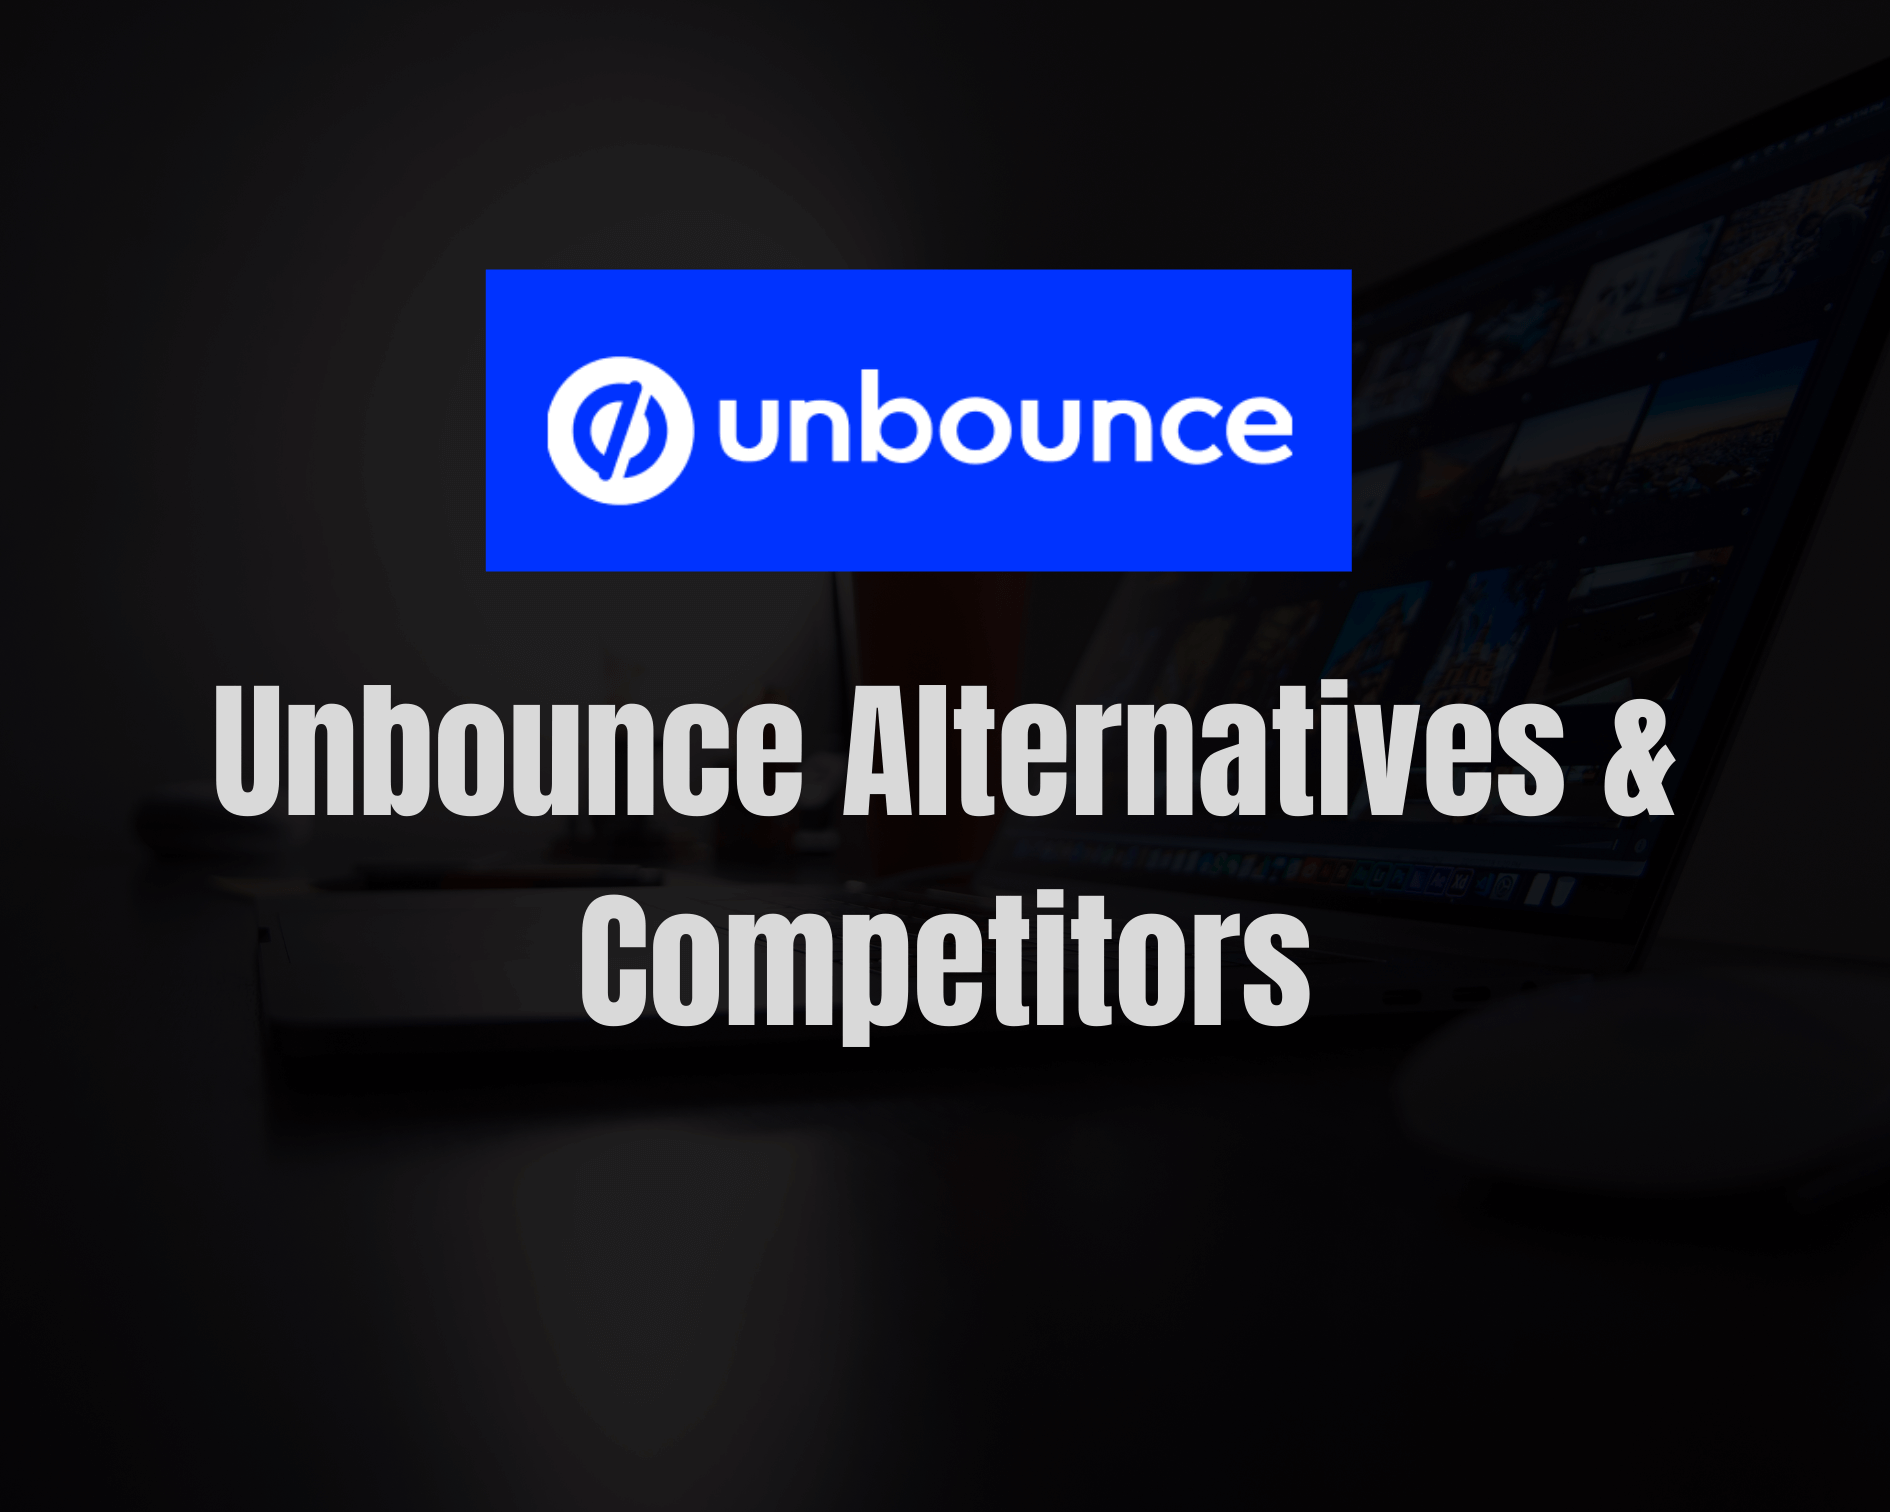 Best 8 Unbounce Alternatives & Competitors in 2021